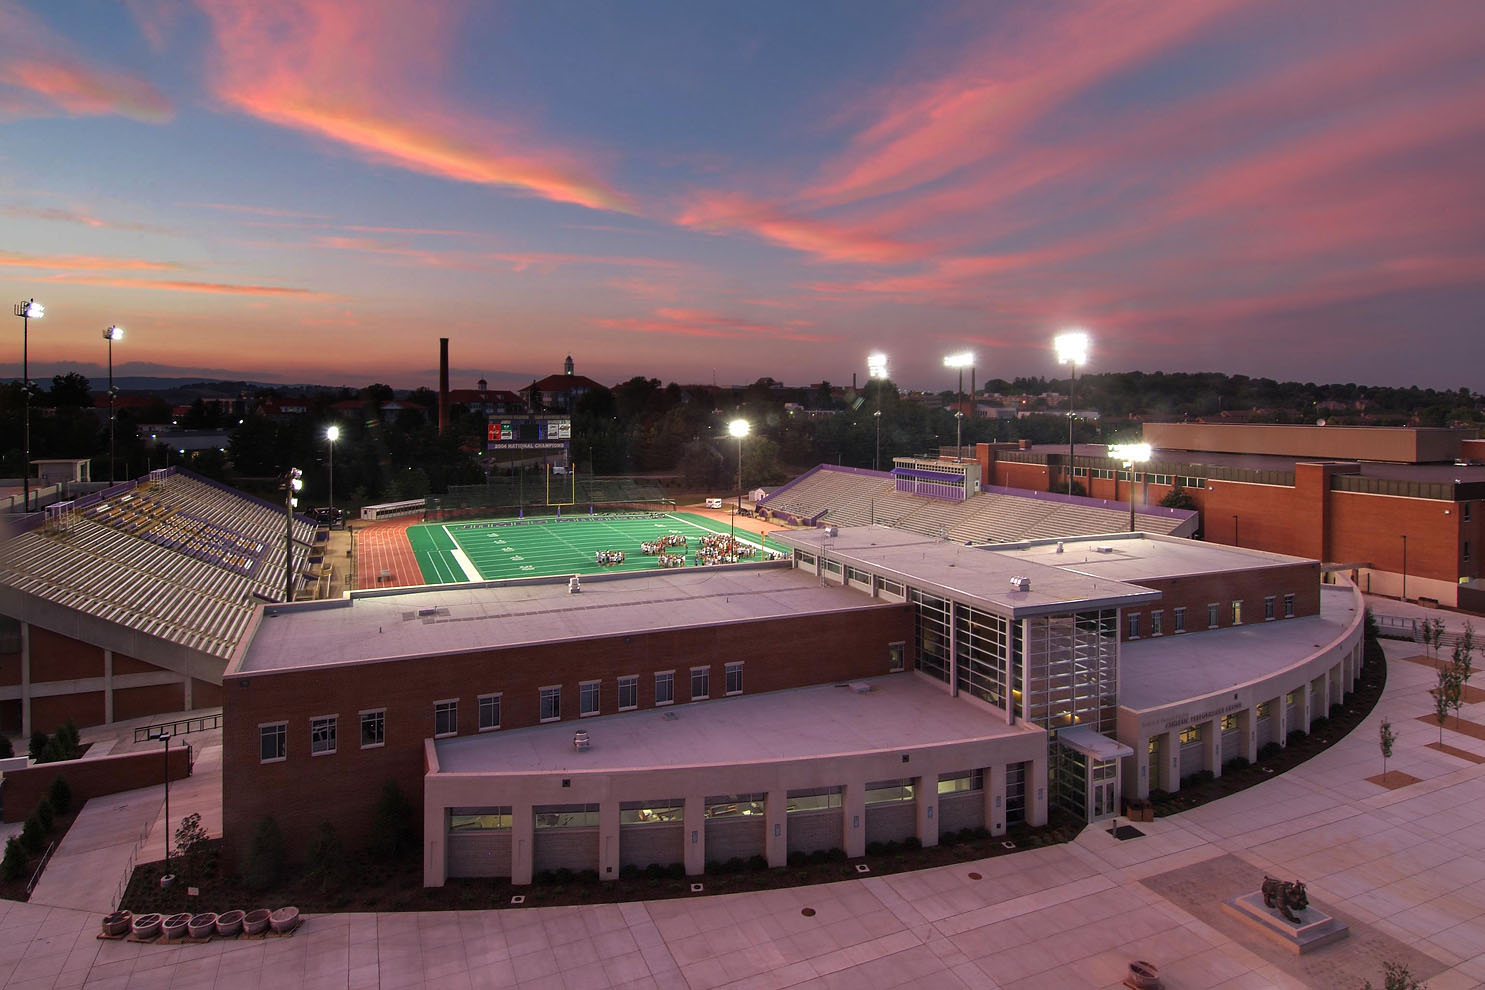 twilight view of building and football field beyond